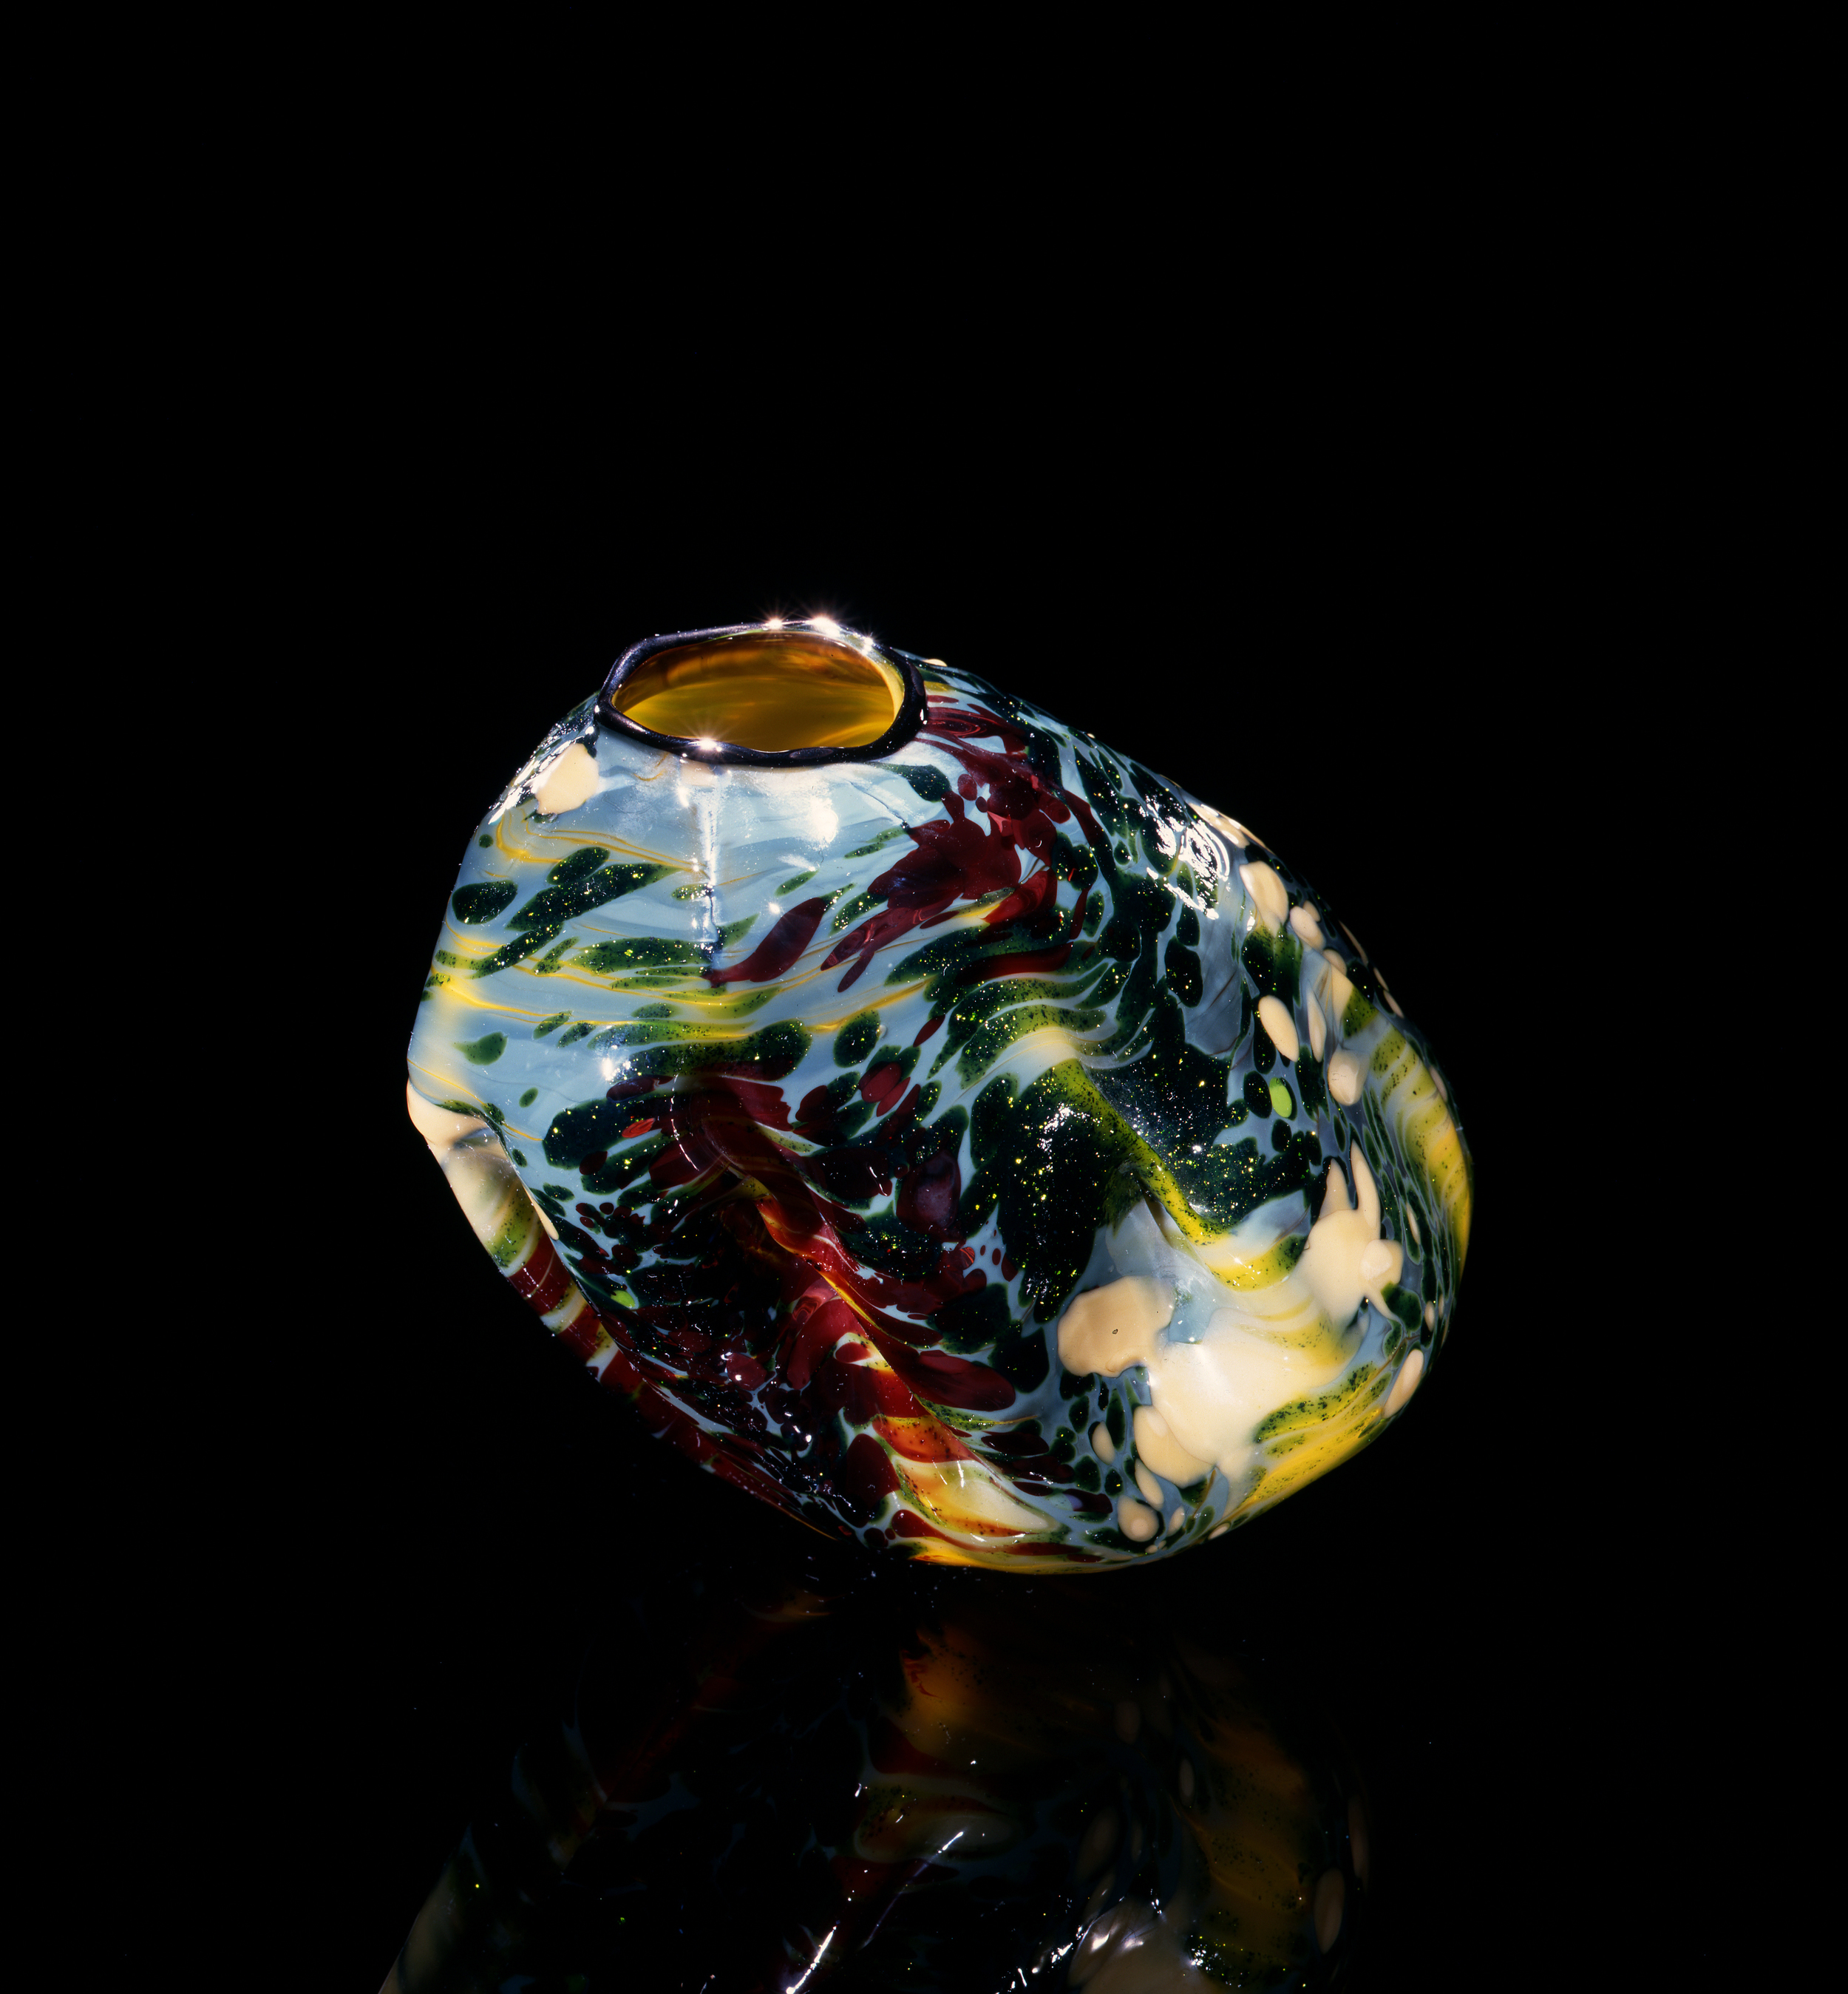 Dale Chihuly, Red and Green Dappled Daffodil Macchia with Orion BlueLip Wrap (1981, glass, 6 x 7 x 6inches), DC.58